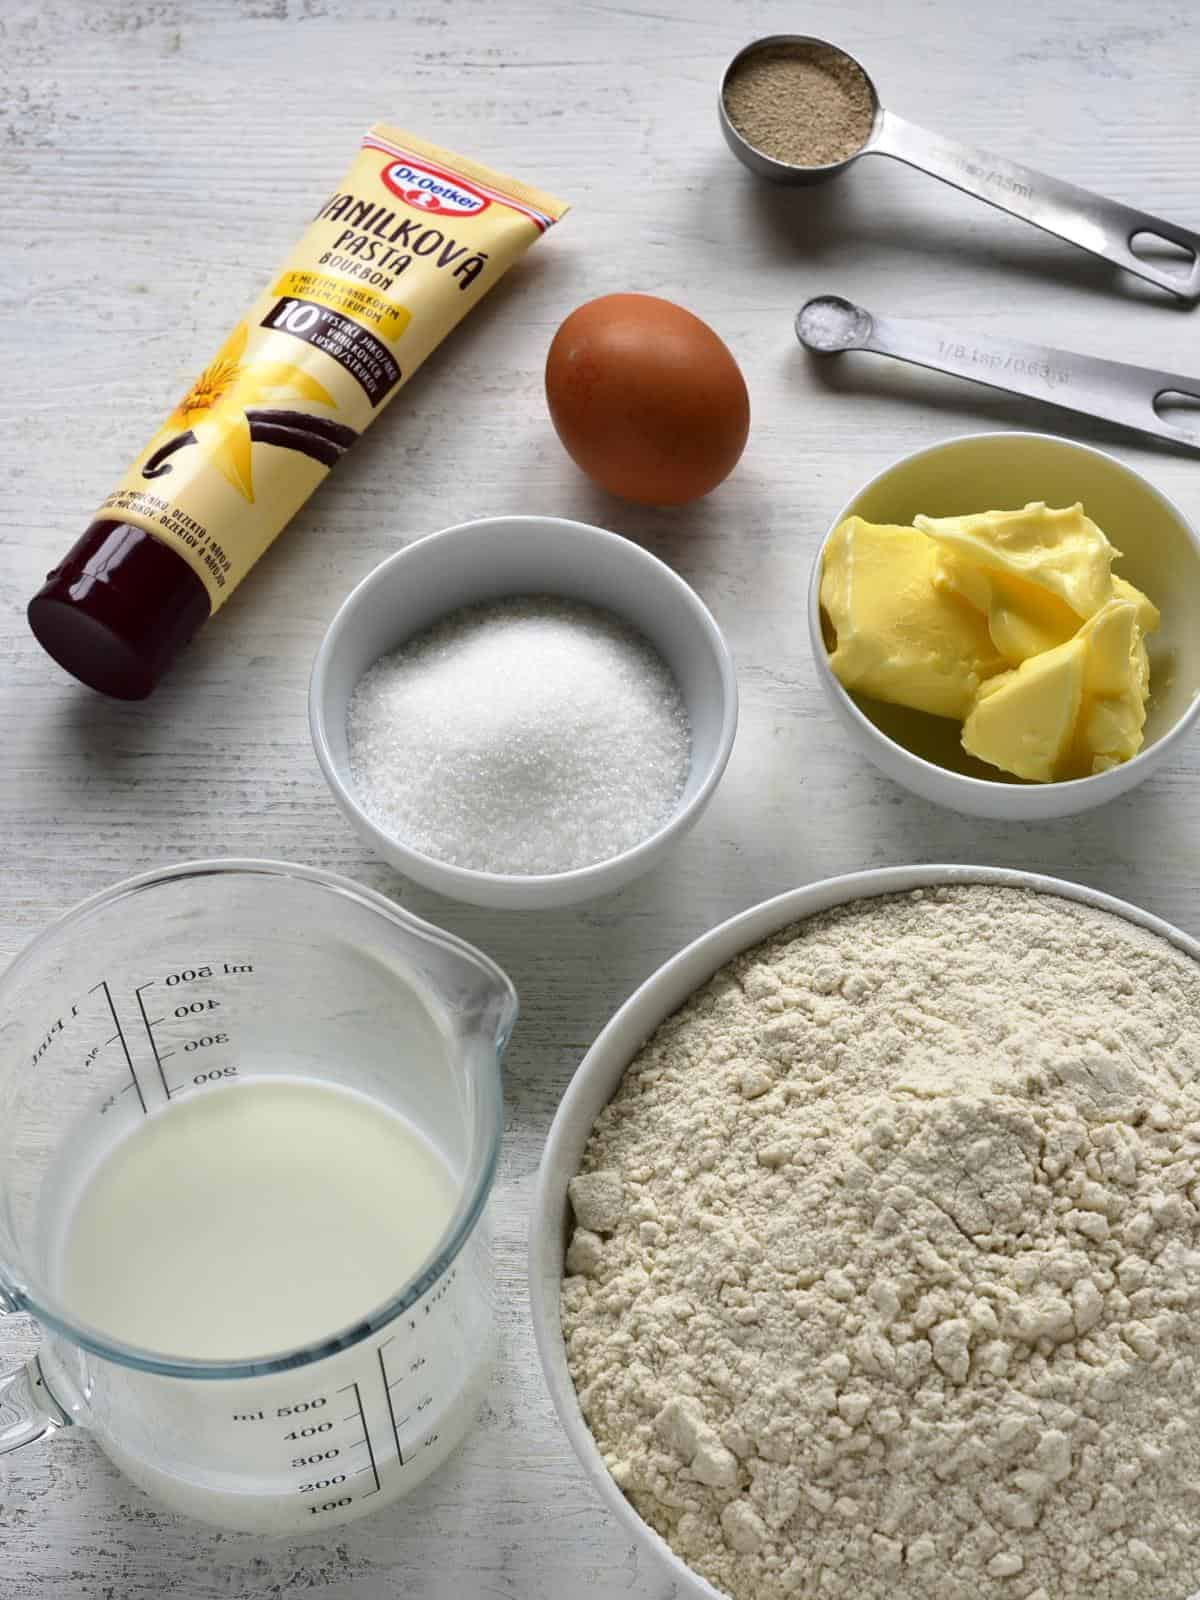 indredients yeast dough